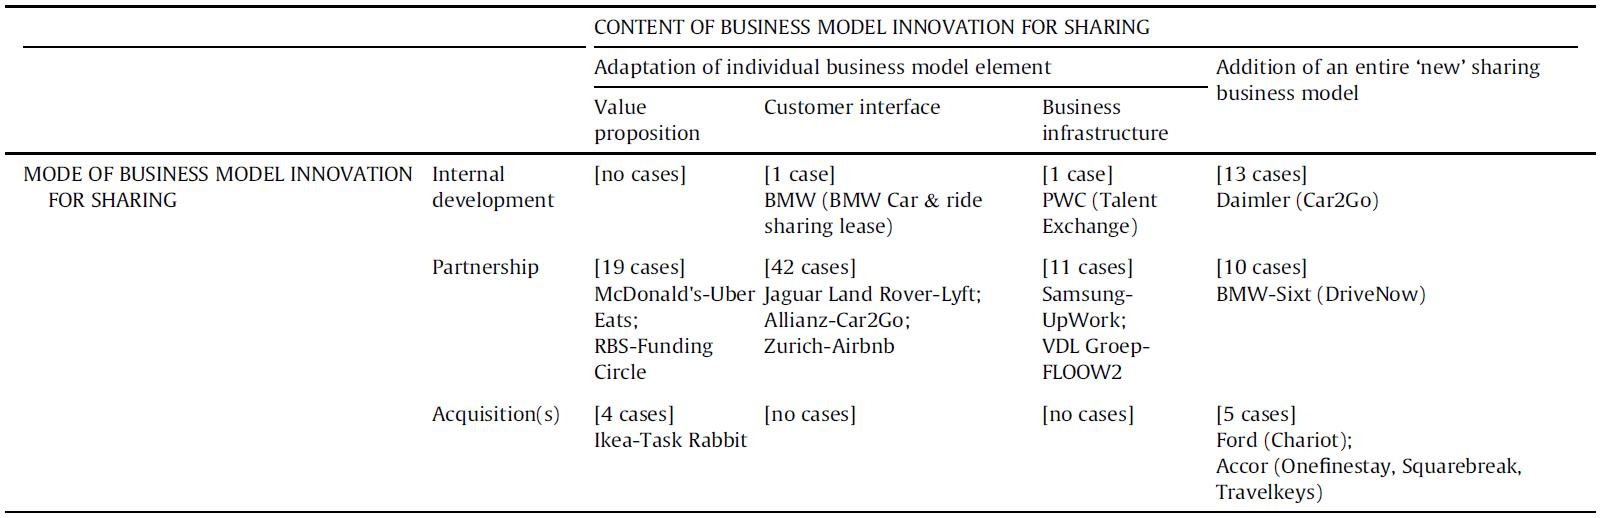 Papers in Brief (XXVII): Ciulli & Kolk (2019): Incumbents and business model innovation for the sharing economy: Implications for sustainability